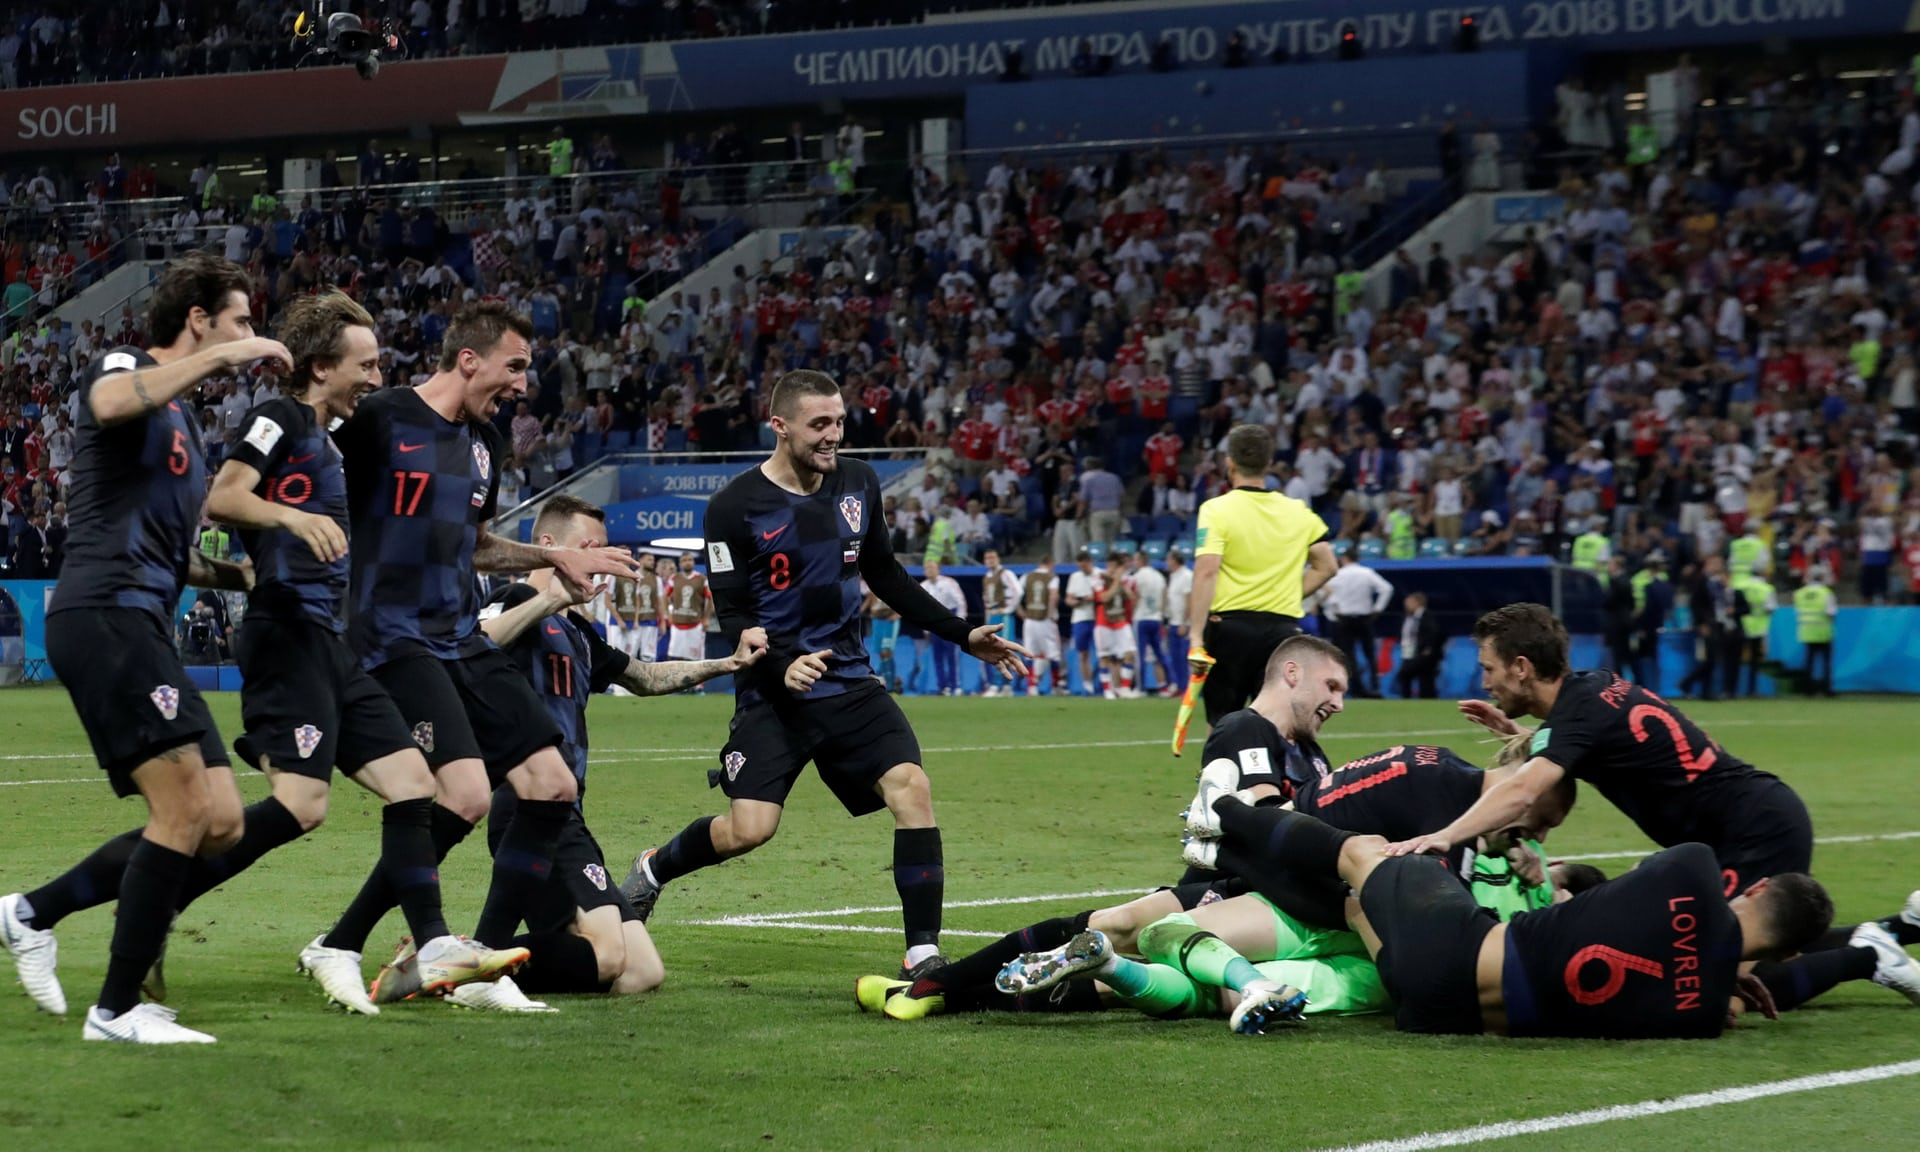 Croatioa beat Russia on Penalties to make semis